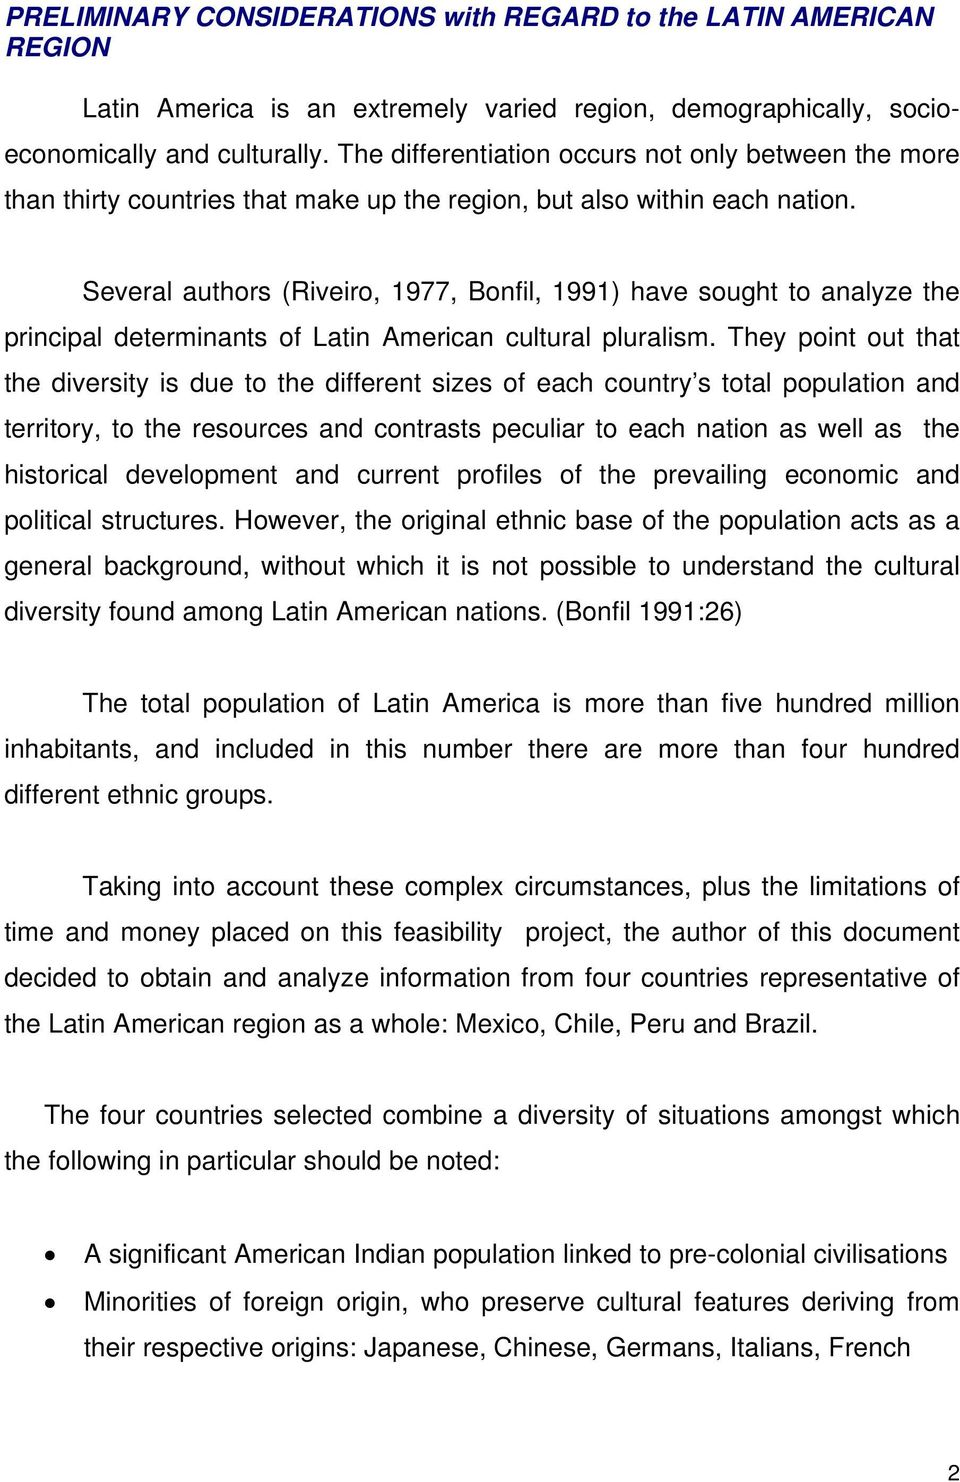 Several authors (Riveiro, 1977, Bonfil, 1991) have sought to analyze the principal determinants of Latin American cultural pluralism.